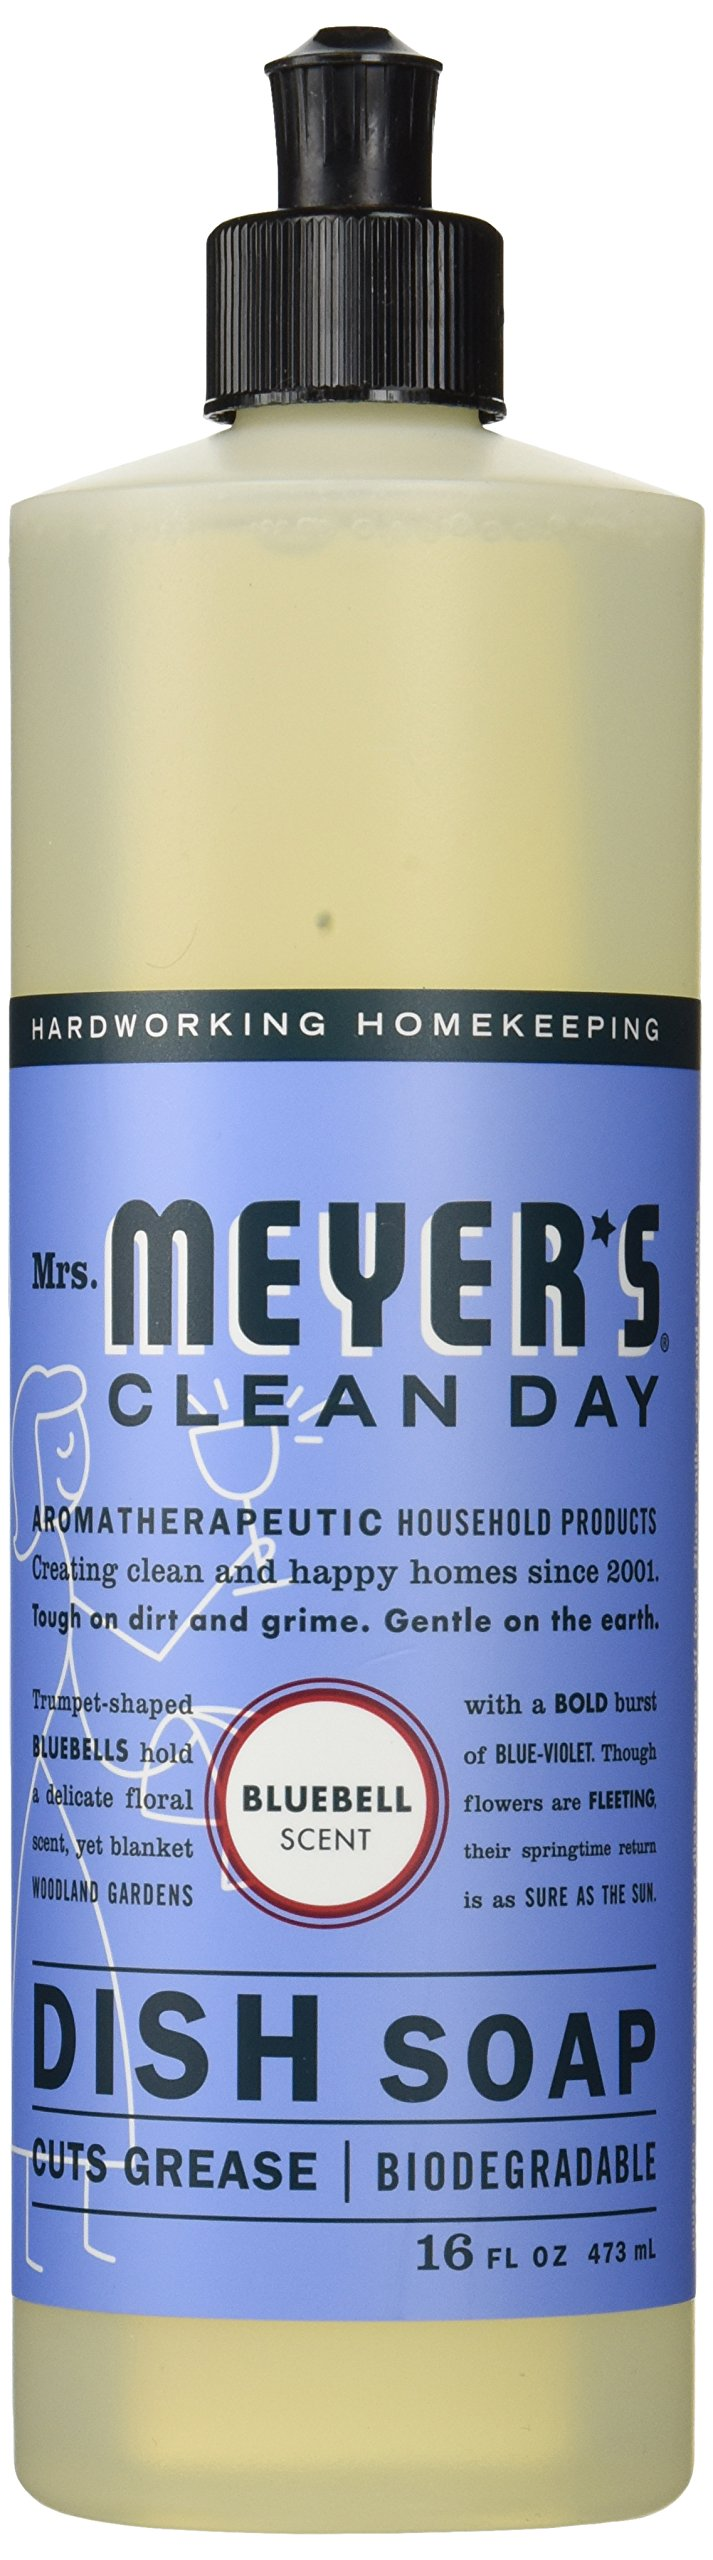 Mrs. Meyer's Clean Day Dish Soap, Bluebell, 16 fl oz